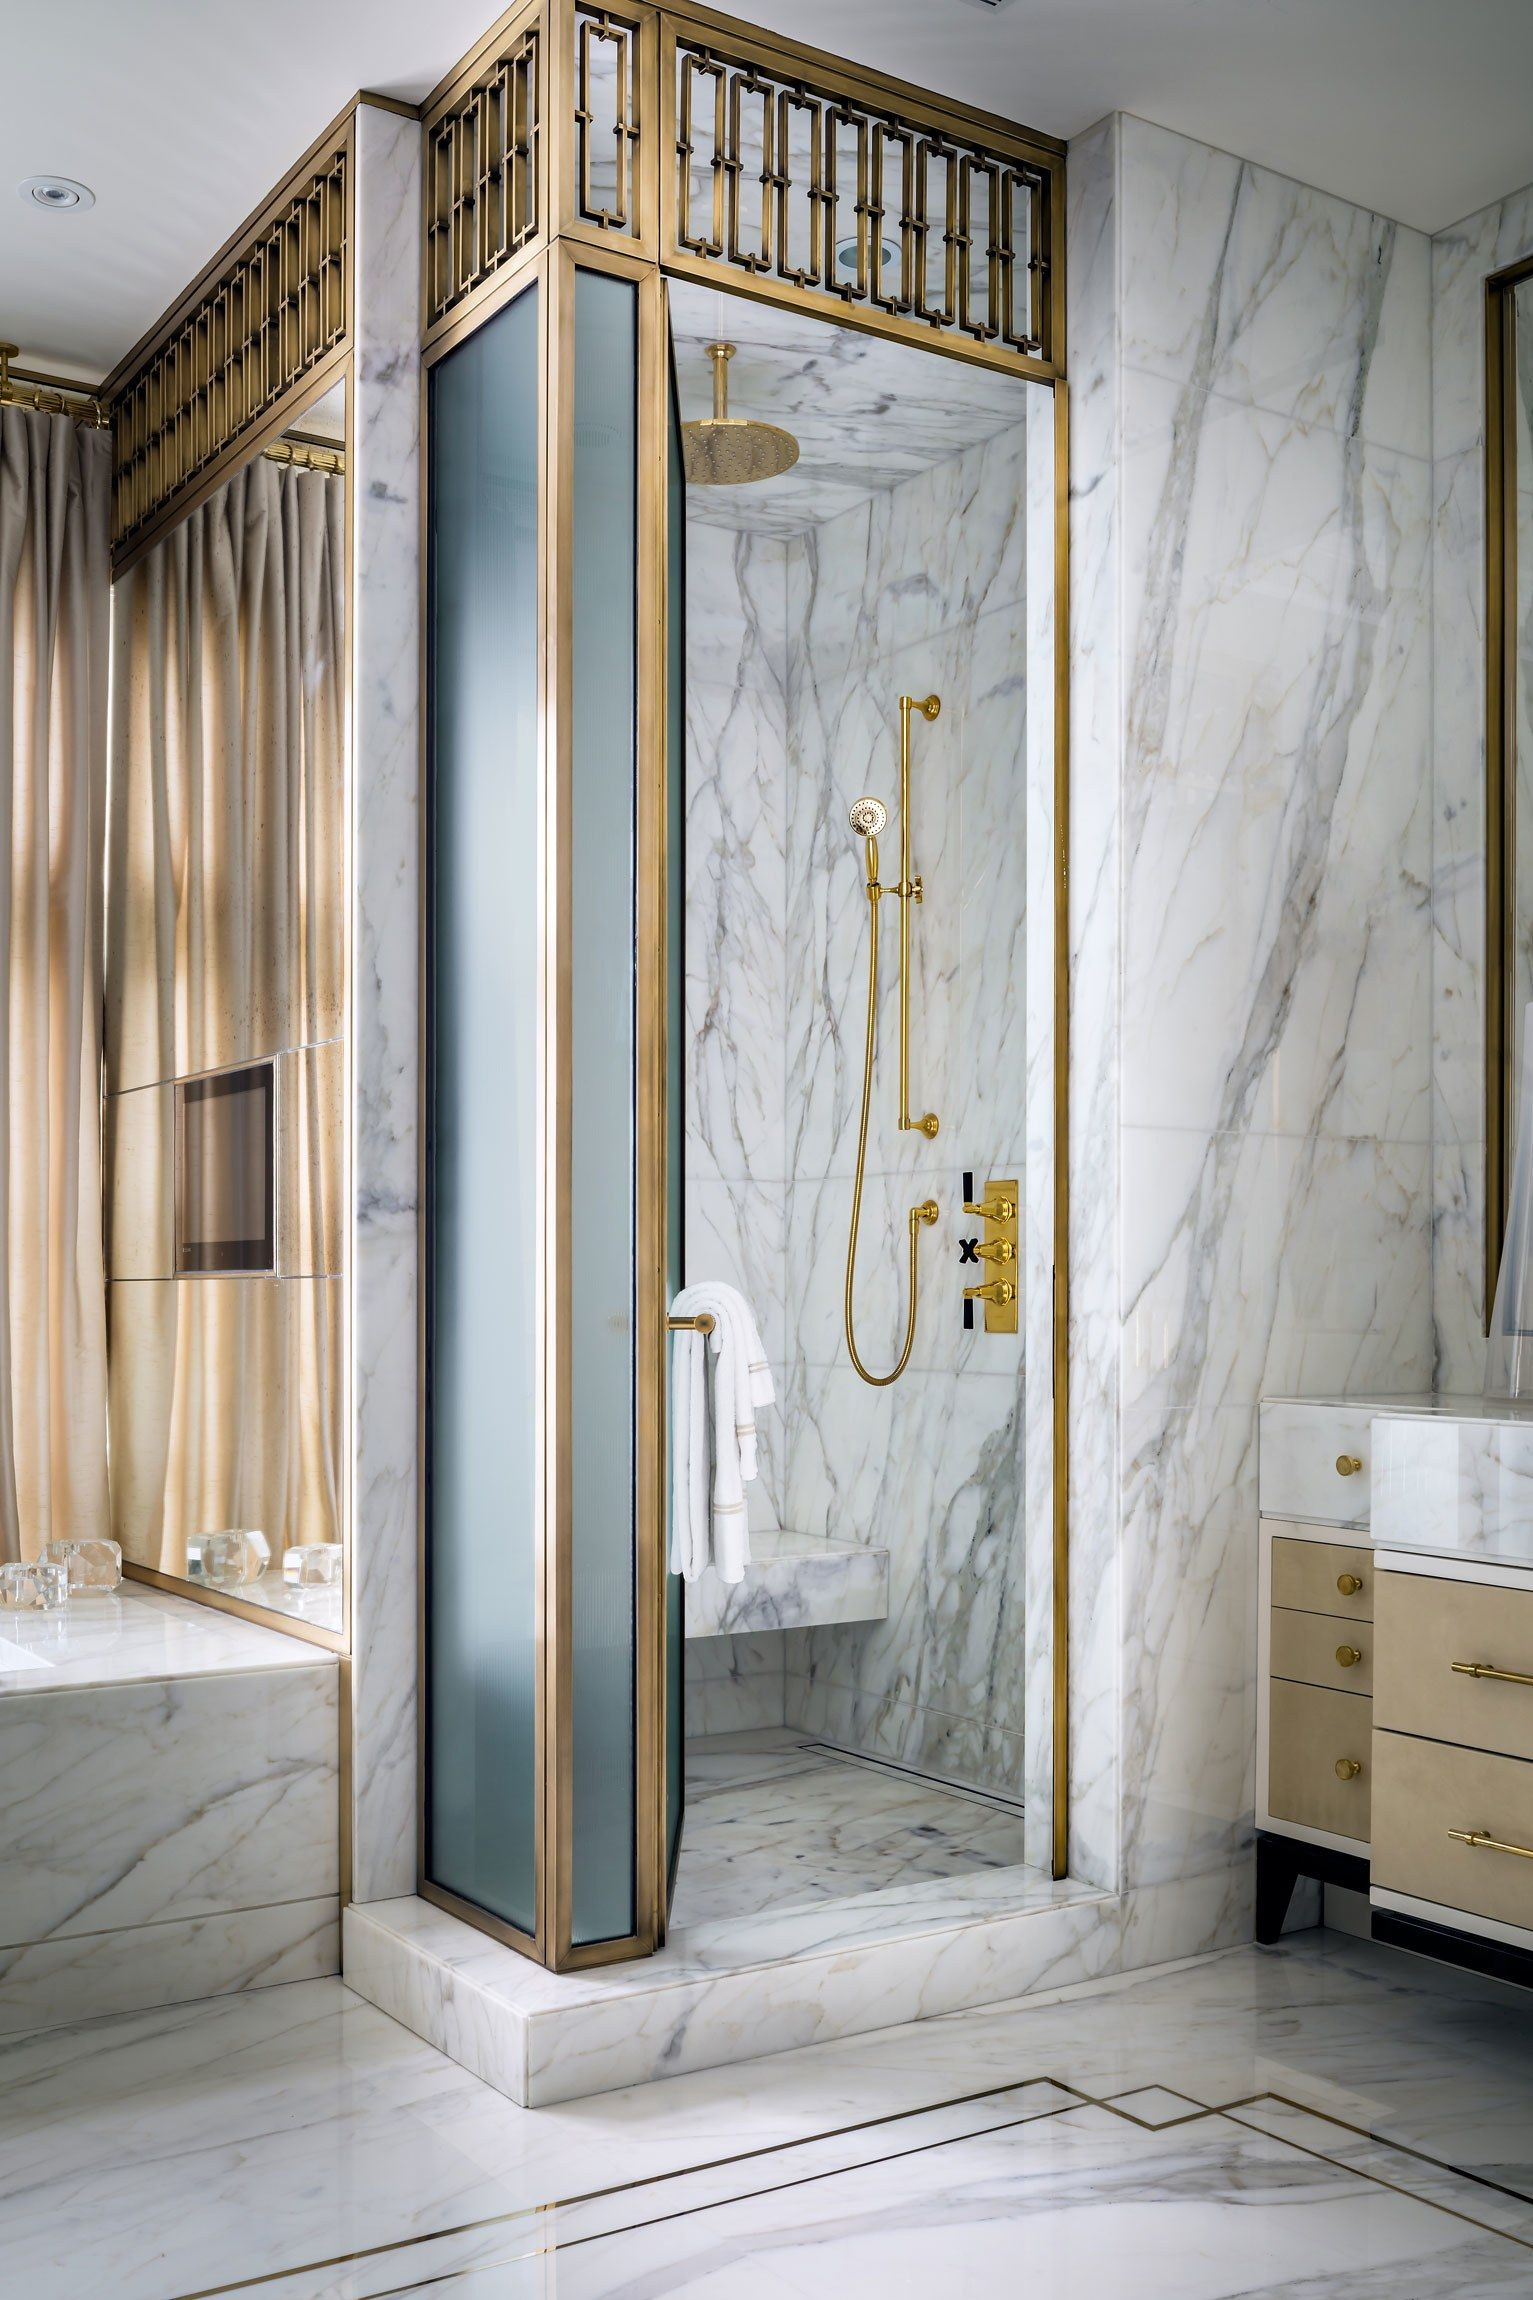 How to correctly enter the Art Deco design in a modern interior